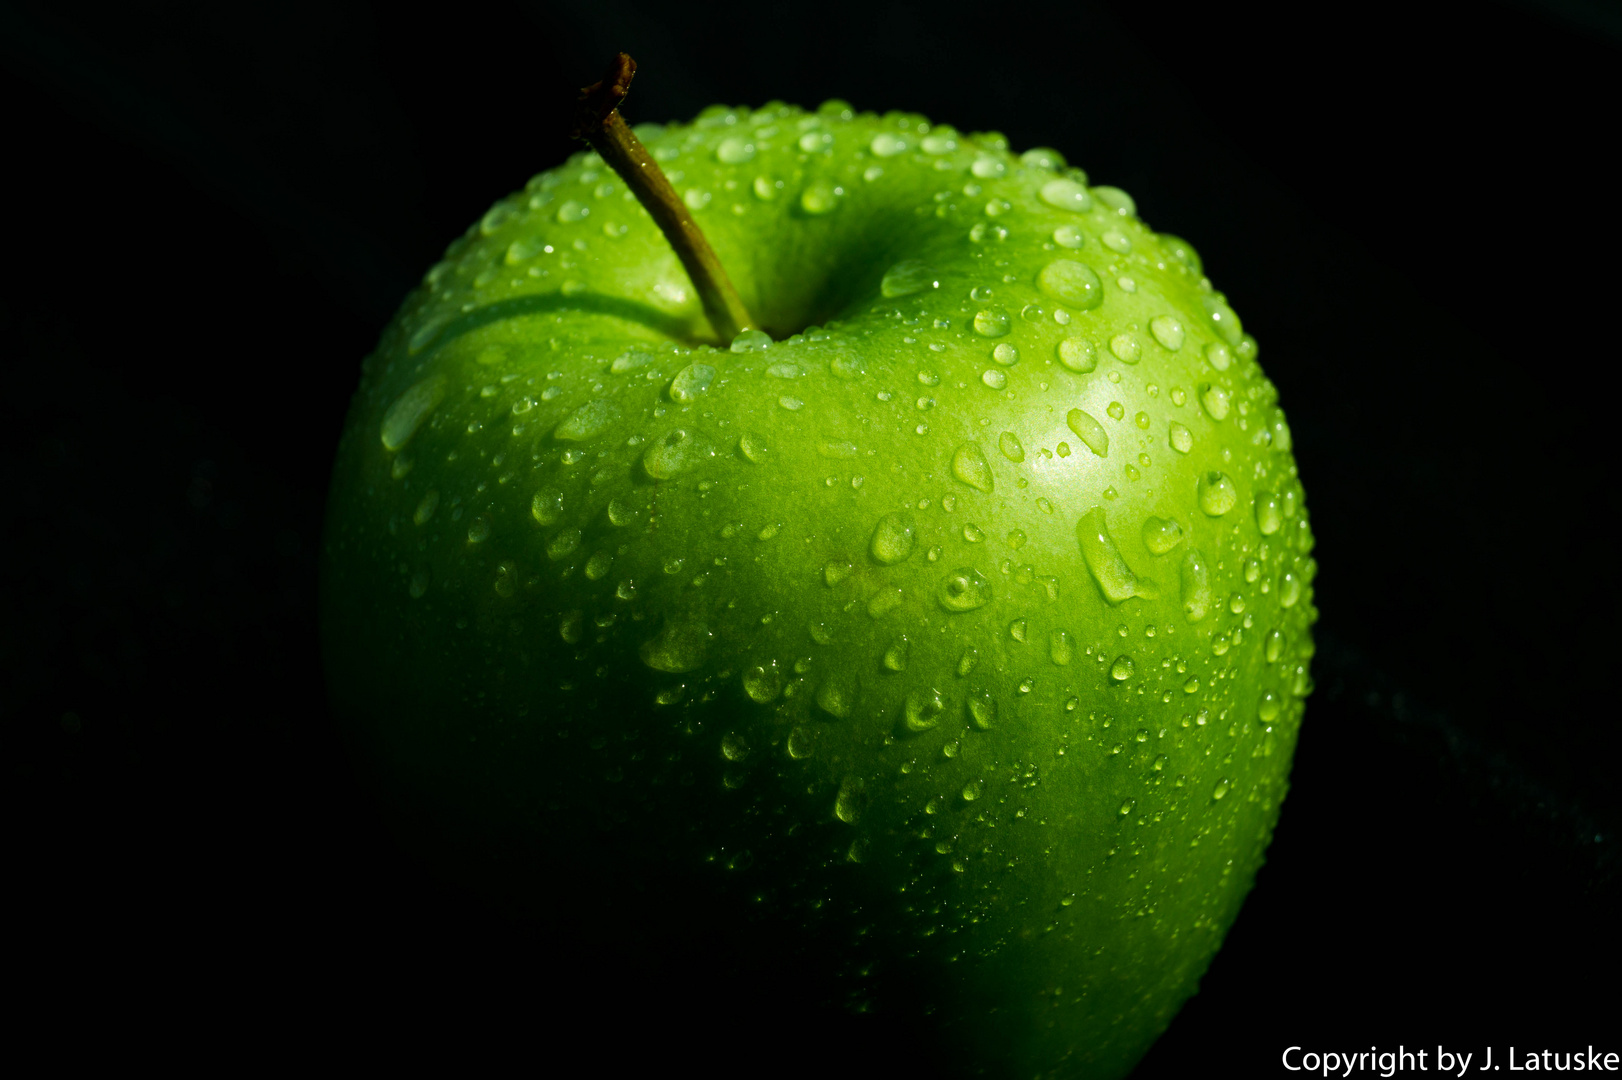 The green fresh Apple